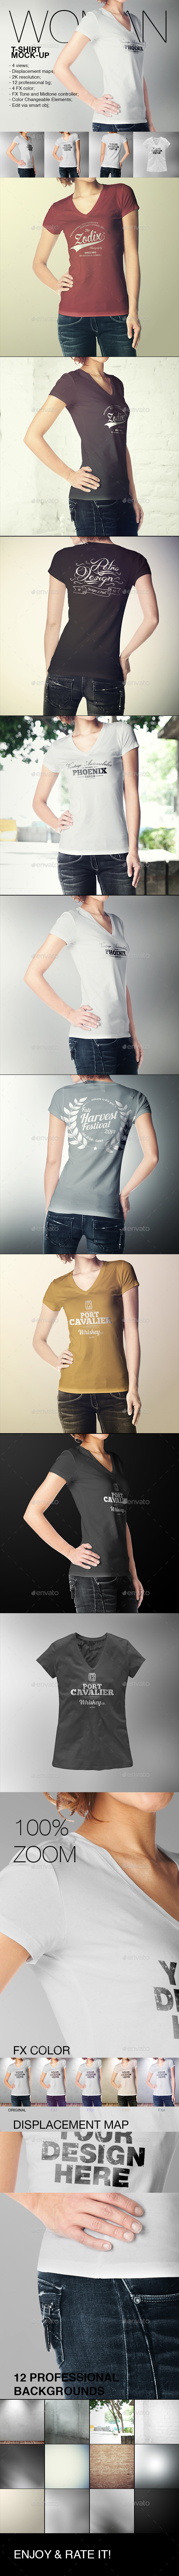 GraphicRiver Woman T-Shirt Mock-Up 10956230